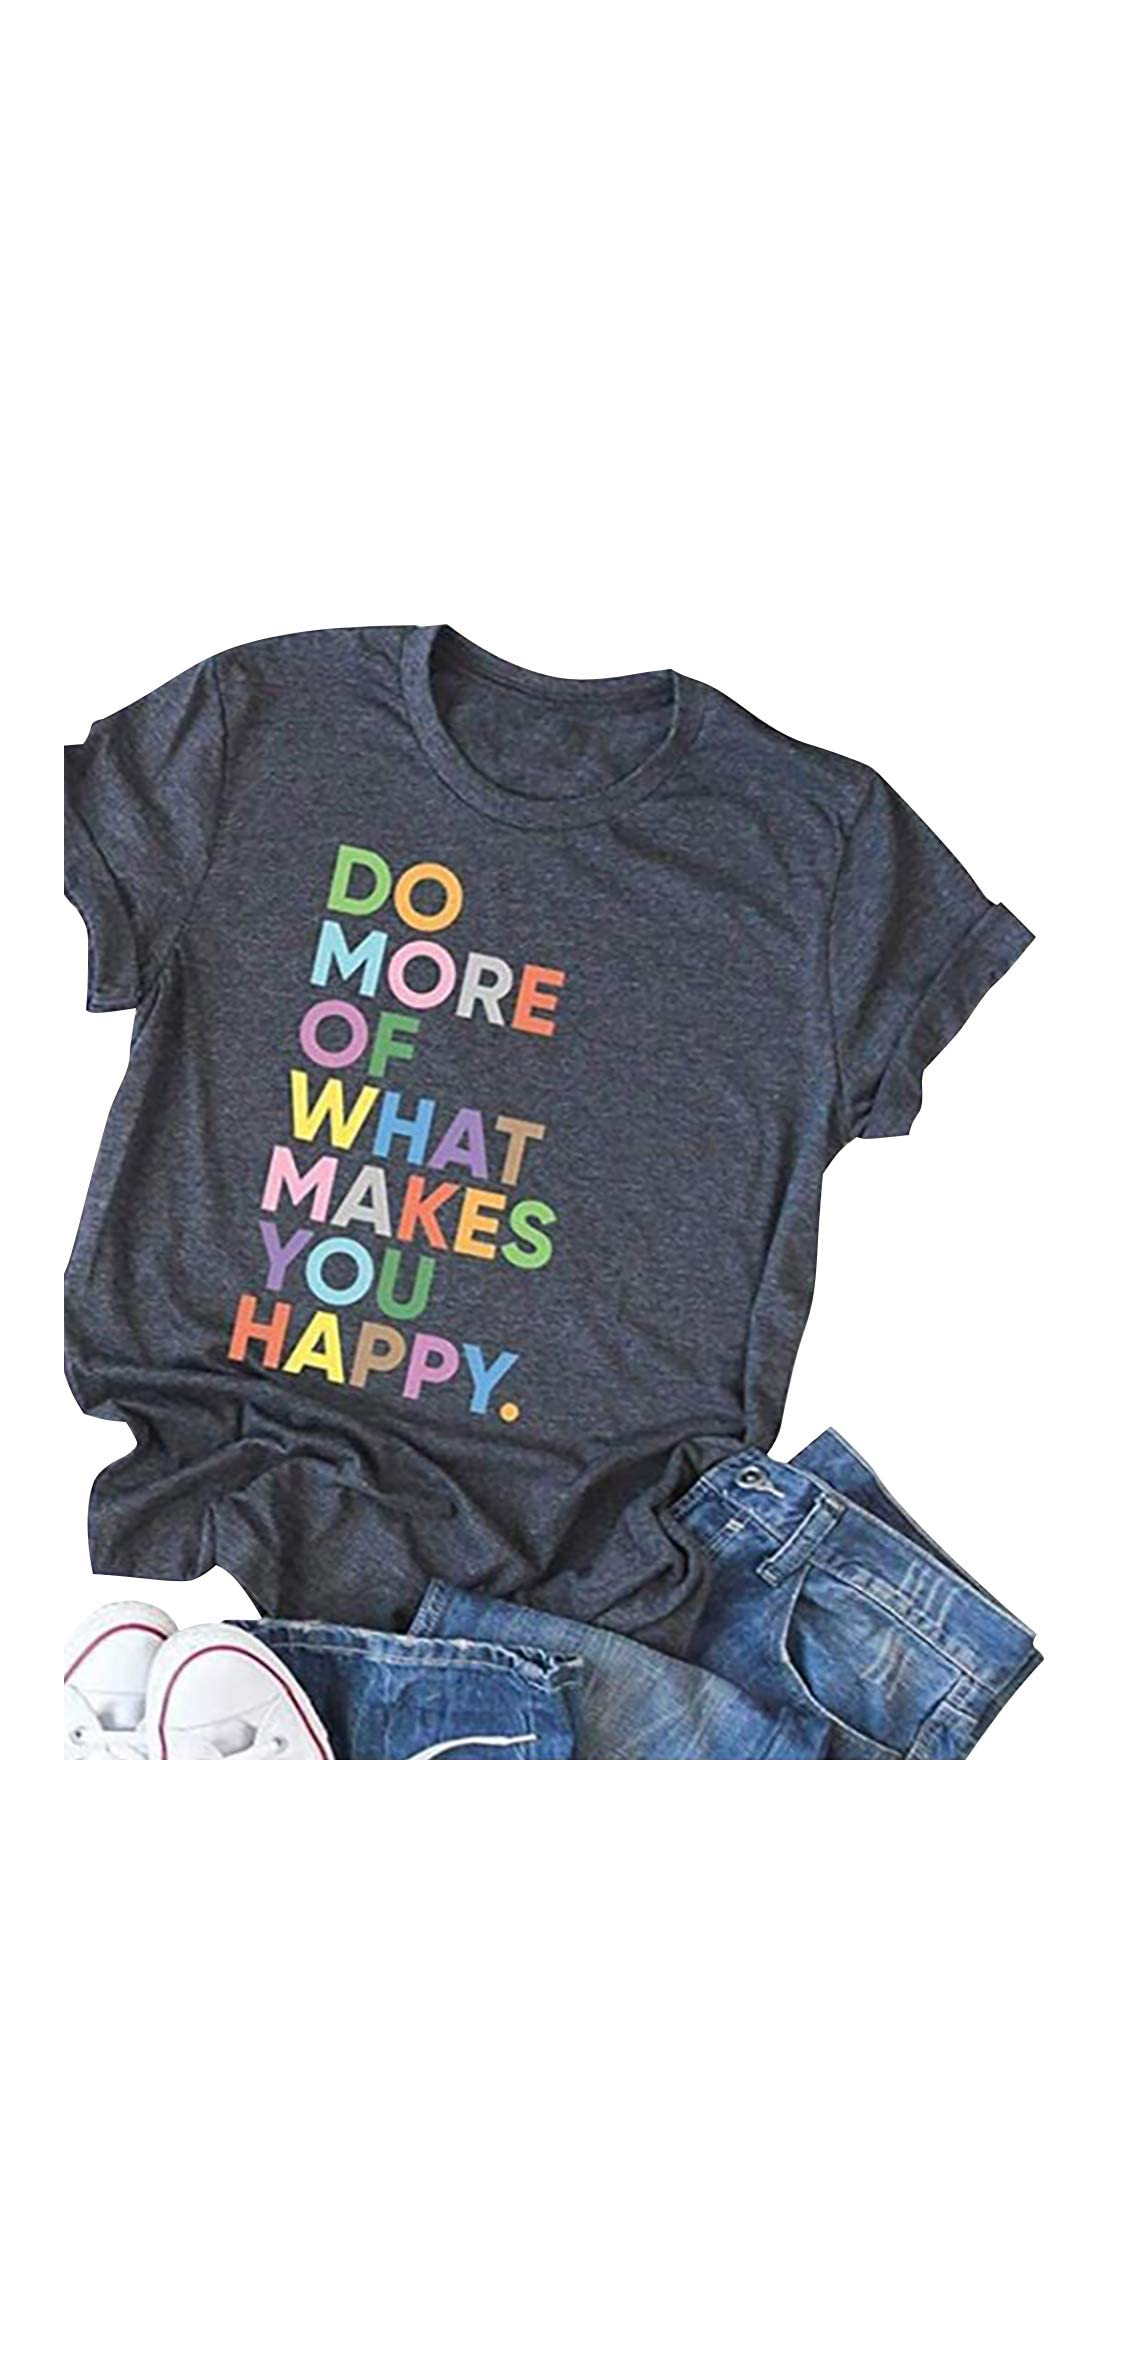 Women's Fun Happy Graphic Tees Cute Short Sleeve Letter Printed